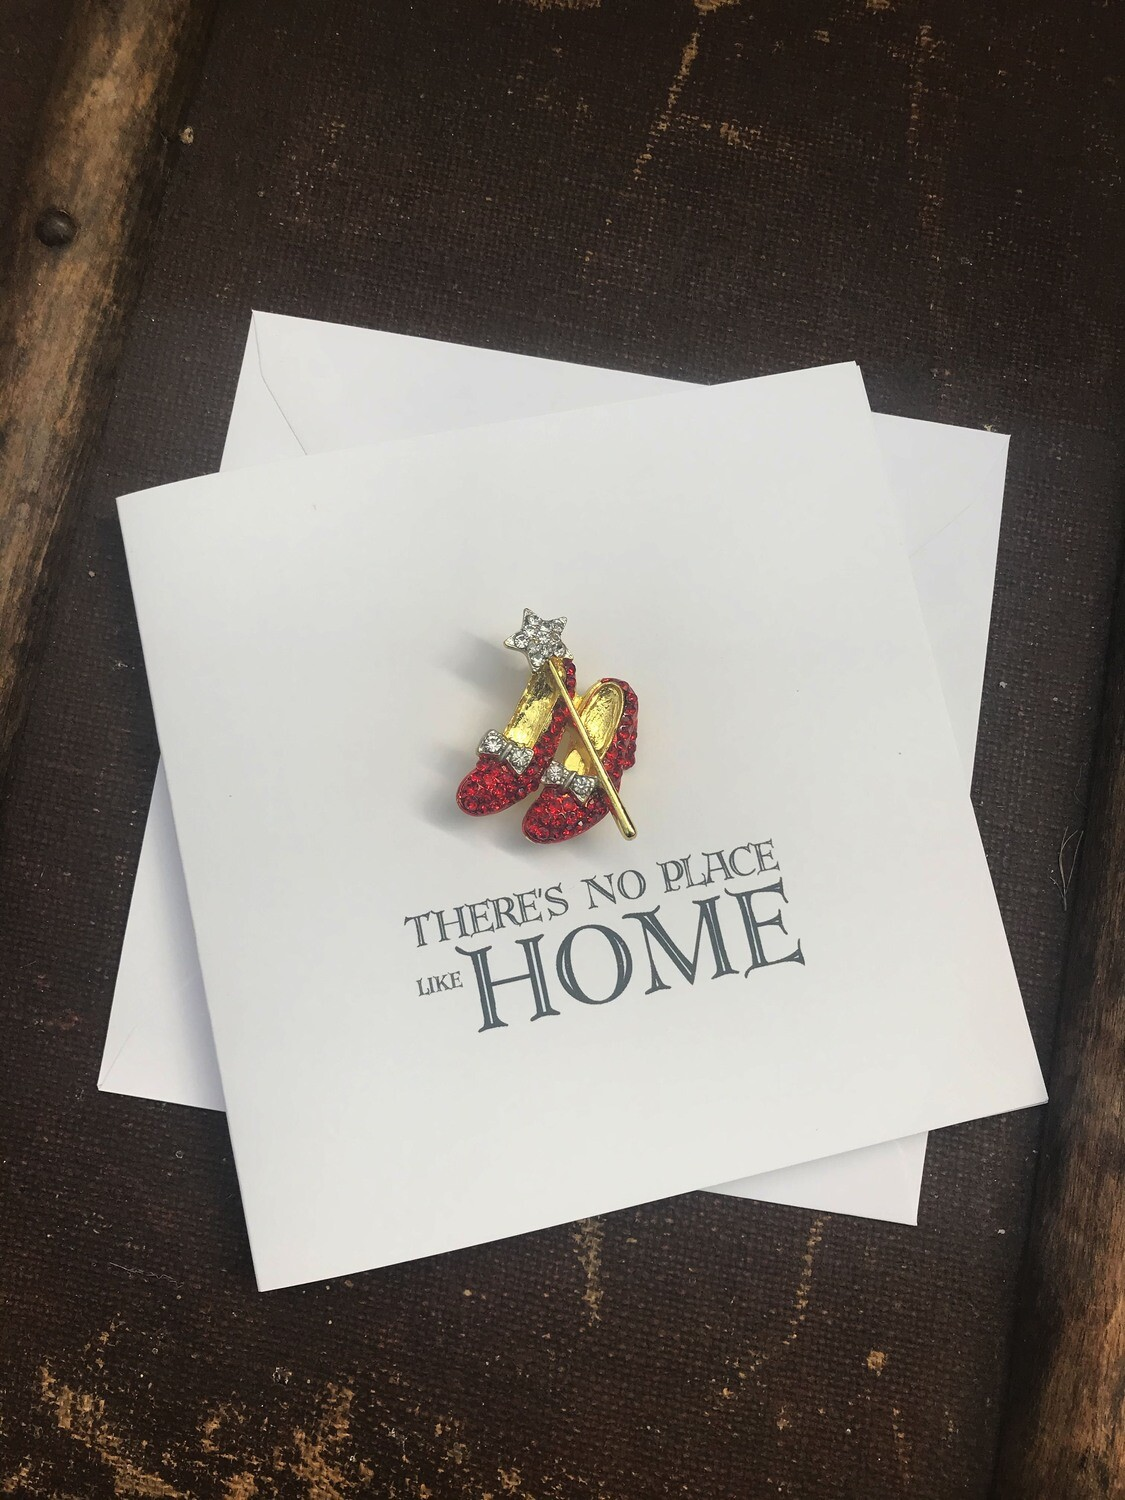 There's No Place Like Home Moving Card with detachable Brooch